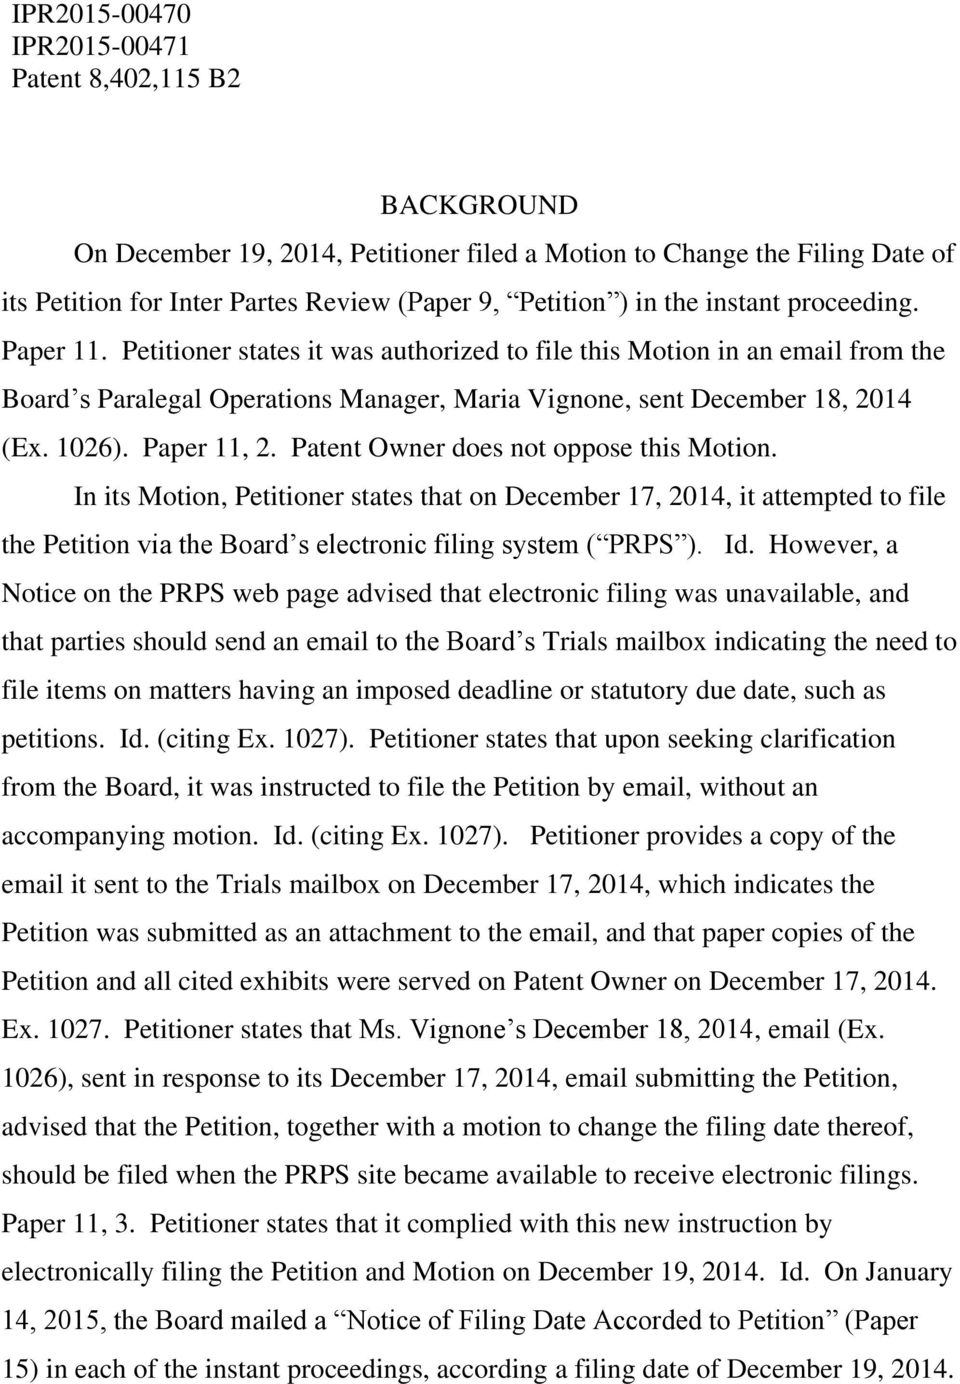 Patent Owner does not oppose this Motion. In its Motion, Petitioner states that on December 17, 2014, it attempted to file the Petition via the Board s electronic filing system ( PRPS ). Id.